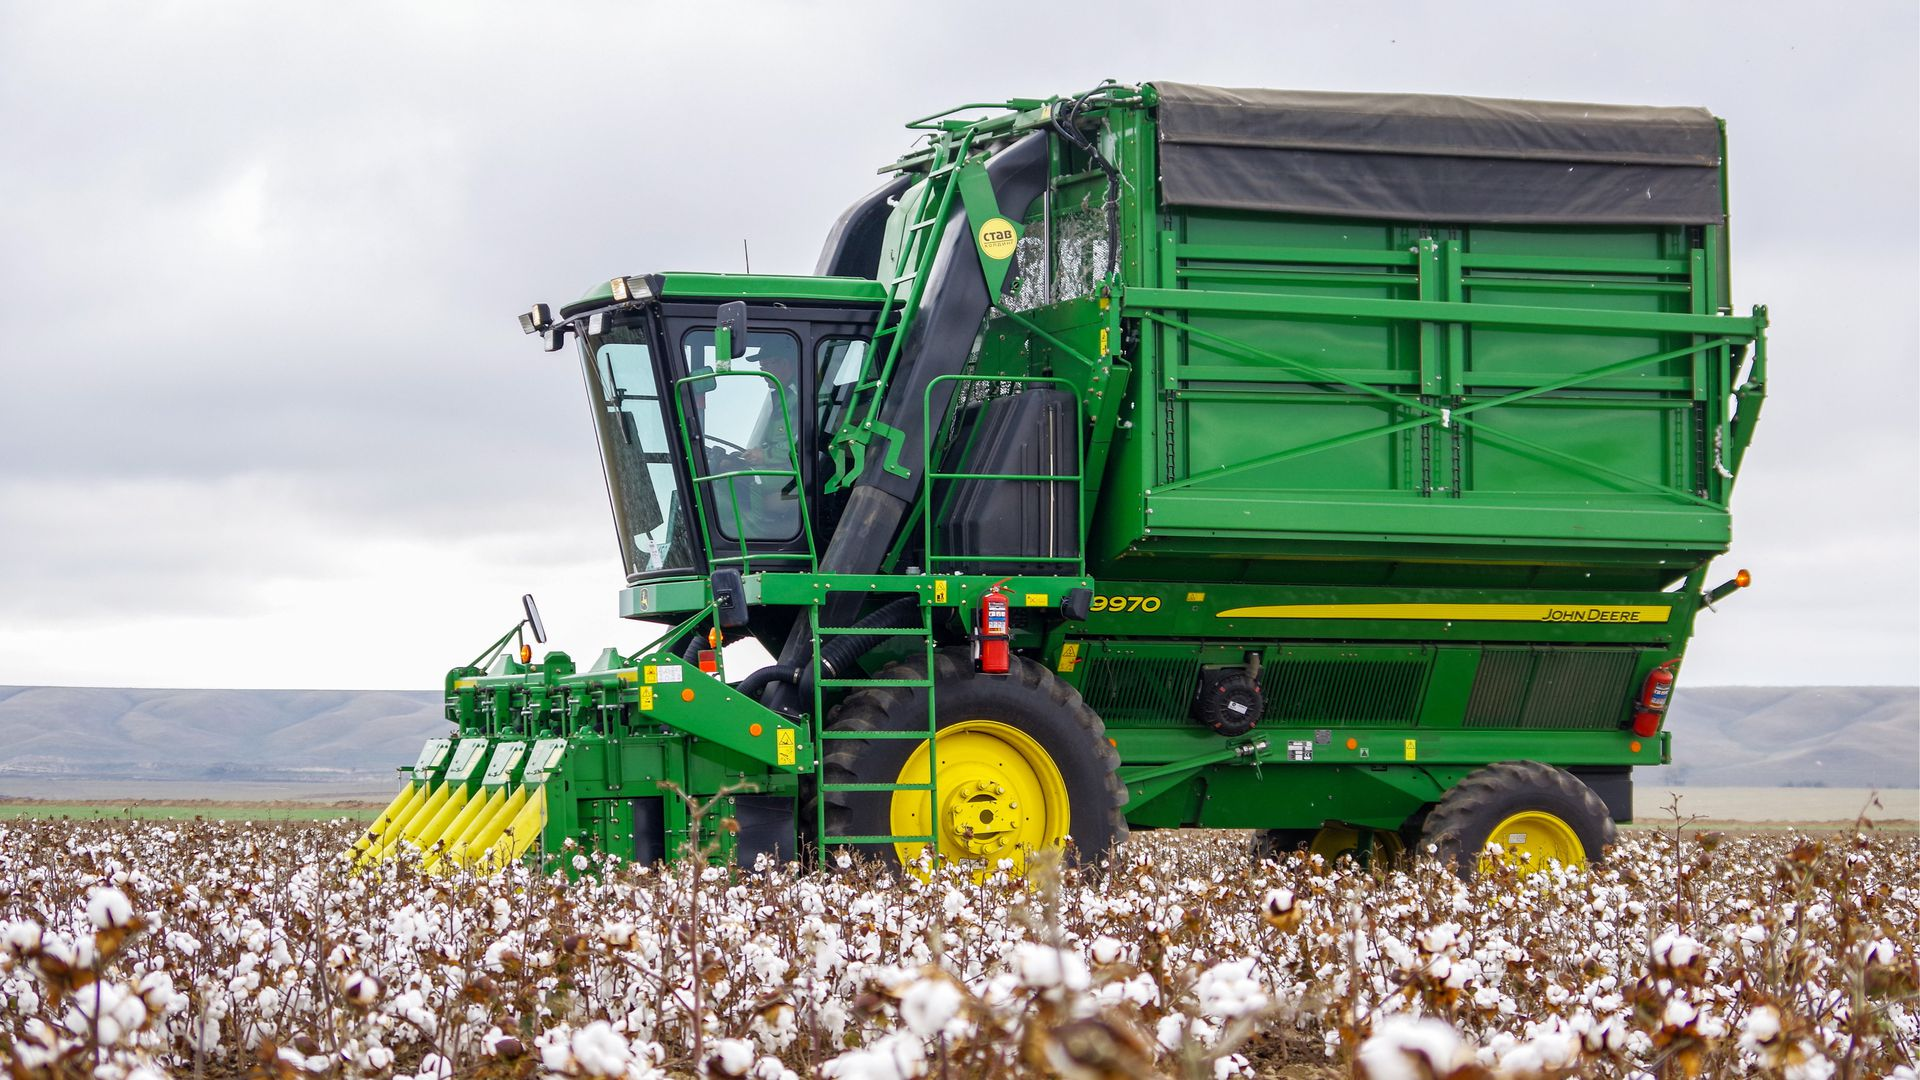 A John Deere cotton harvester